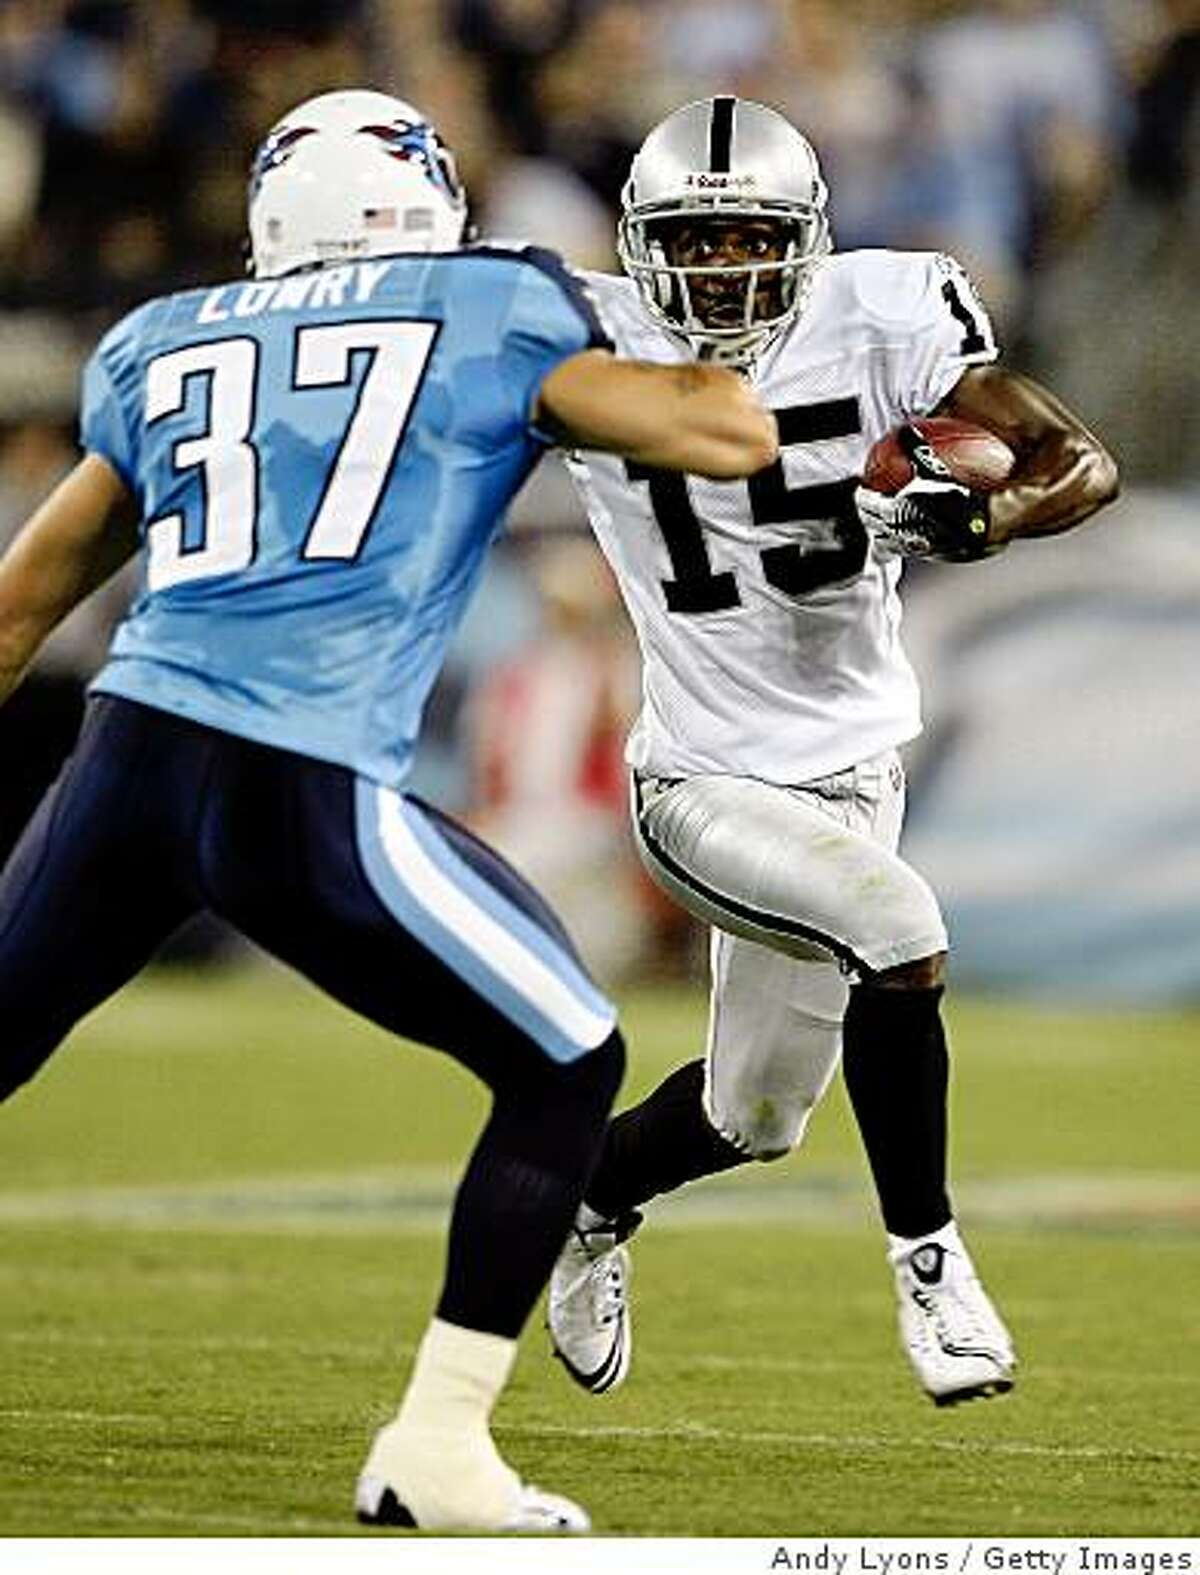 NASHVILLE, TN - AUGUST 15: Johnnie Lee Higgins #15 of the Oakland Raiders runs with the ball against Calvin Lowry #37 of the Tennessee Titans during the NFL pre-season game at LP Field August 15, 2008 in Nashville, Tennessee. (Photo by Andy Lyons/Getty Images)